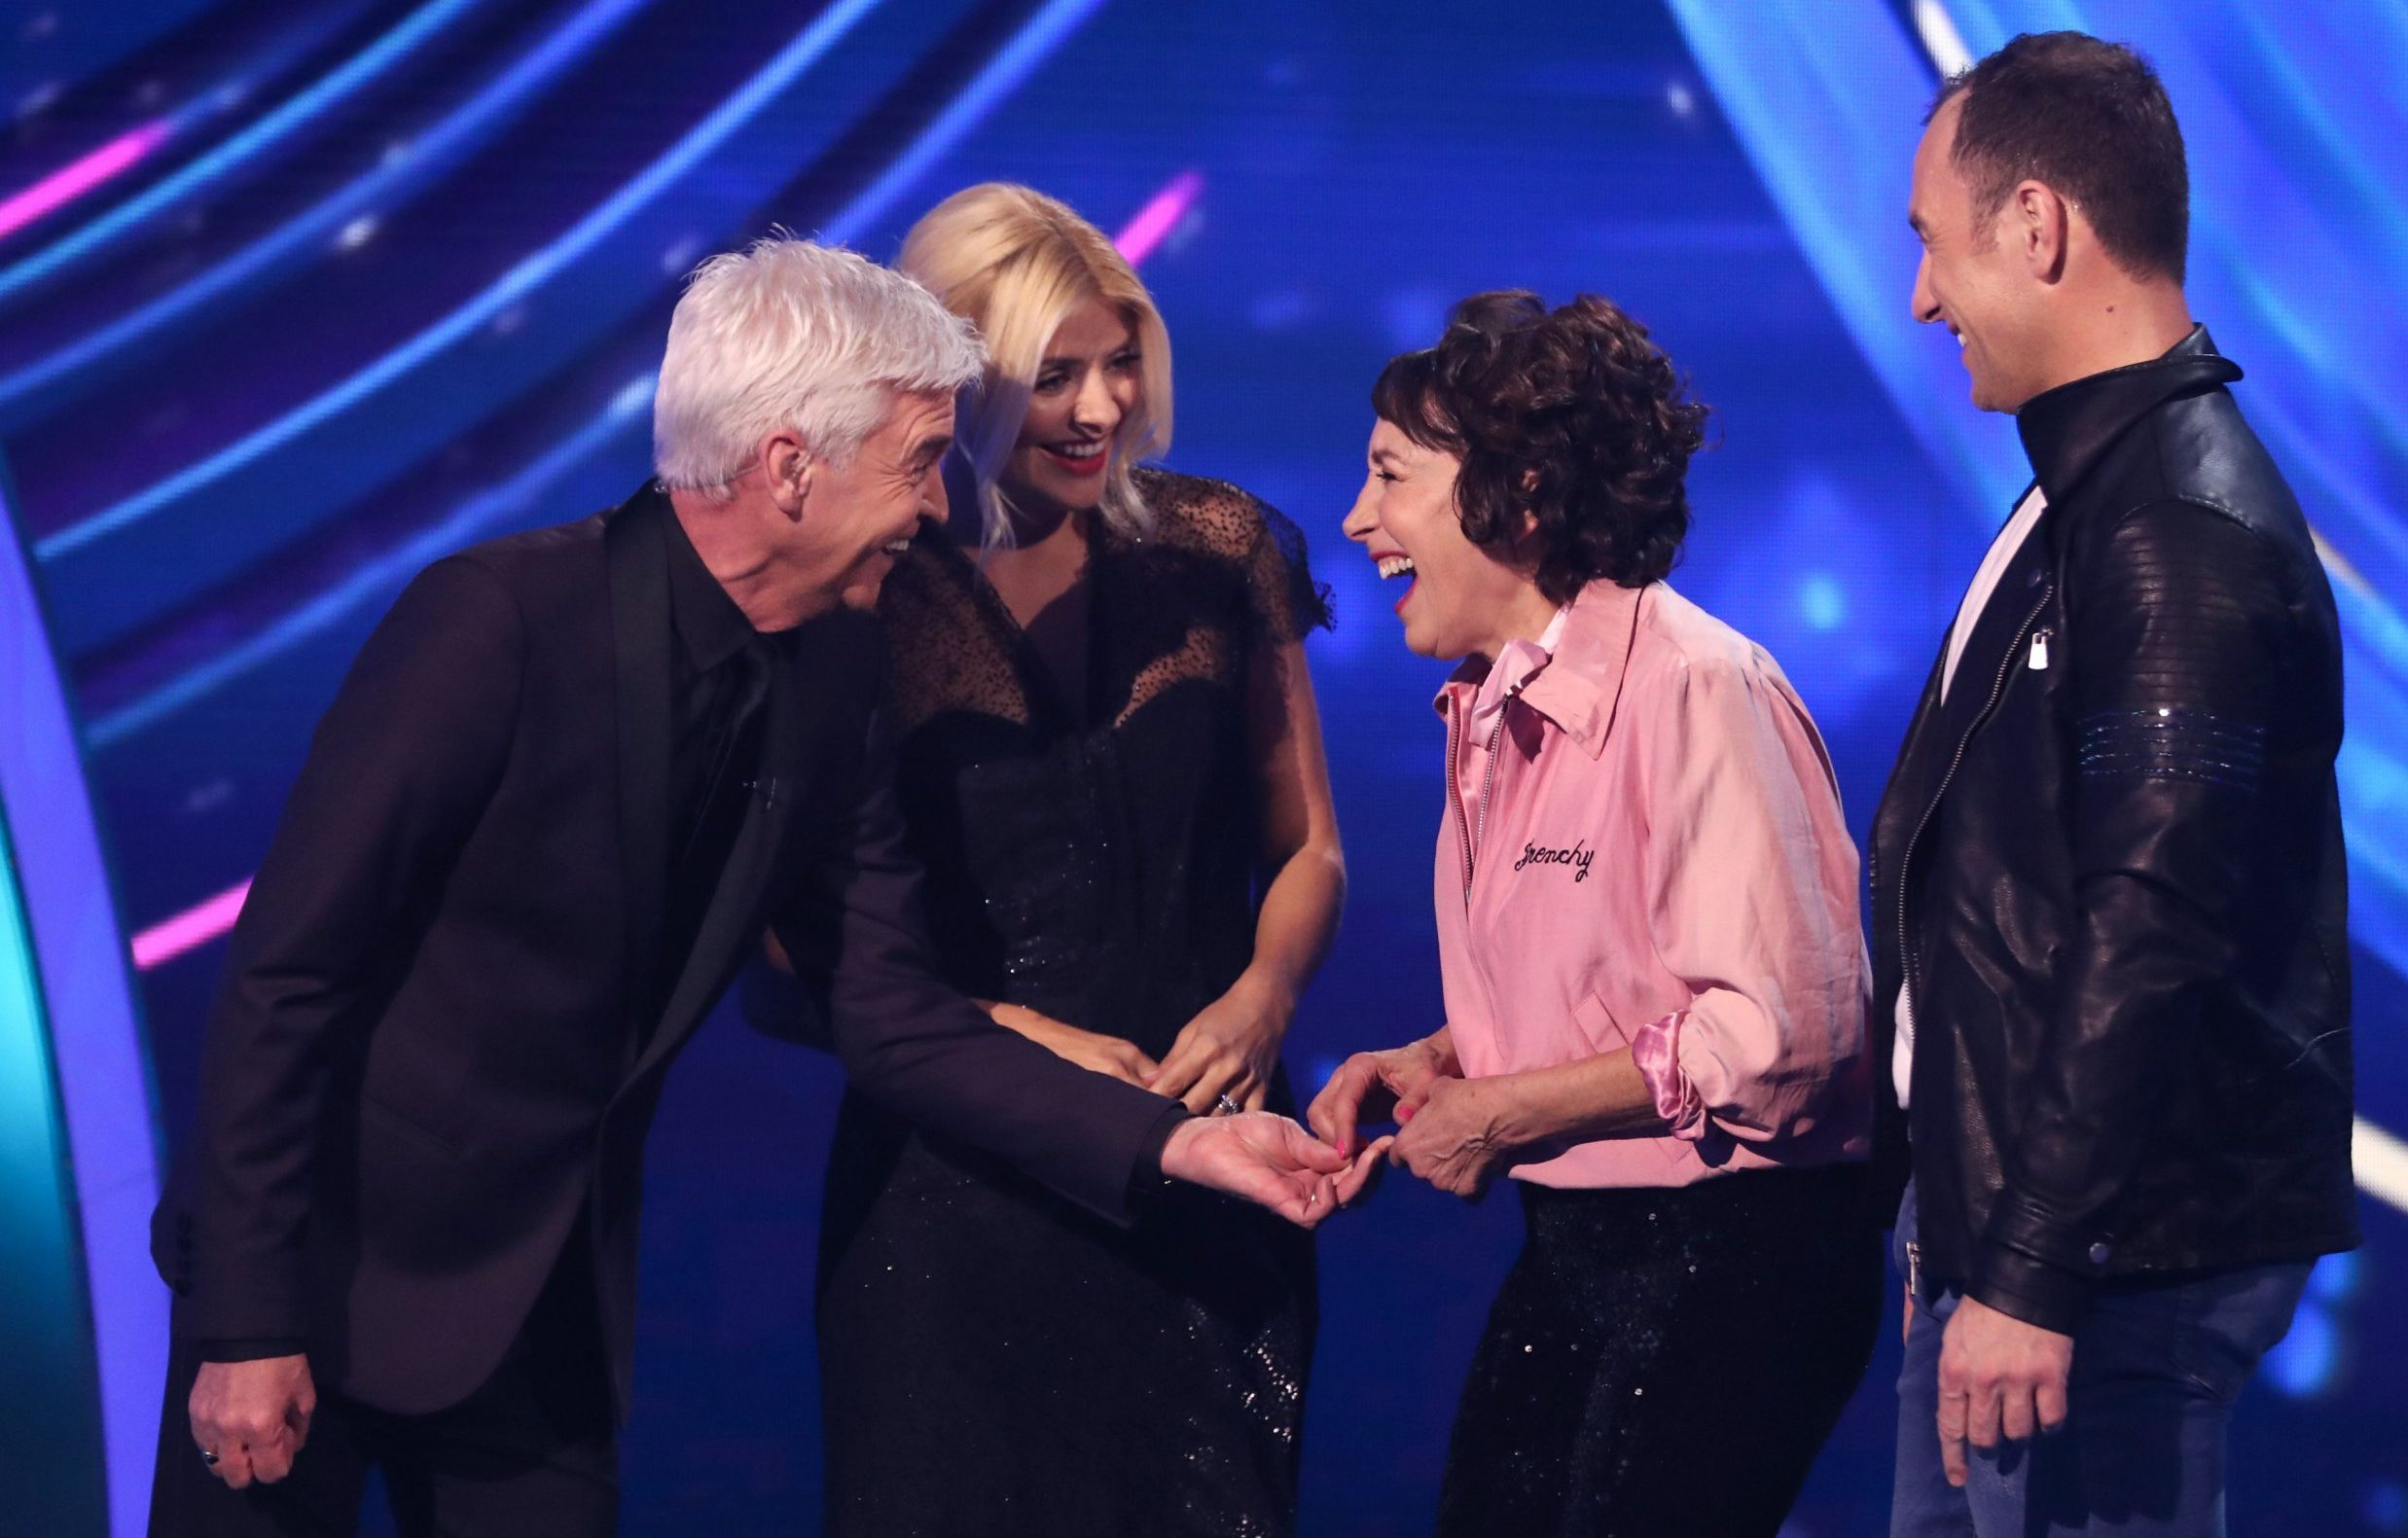 Editorial use only Mandatory Credit: Photo by Matt Frost/ITV/REX (10048681af) Phillip Schofield and Holly Willoughby, Didi Conn and Lukasz Rozycki 'Dancing on Ice' TV show, Series 11, Episode 1, Hertfordshire, UK - 06 Jan 2019